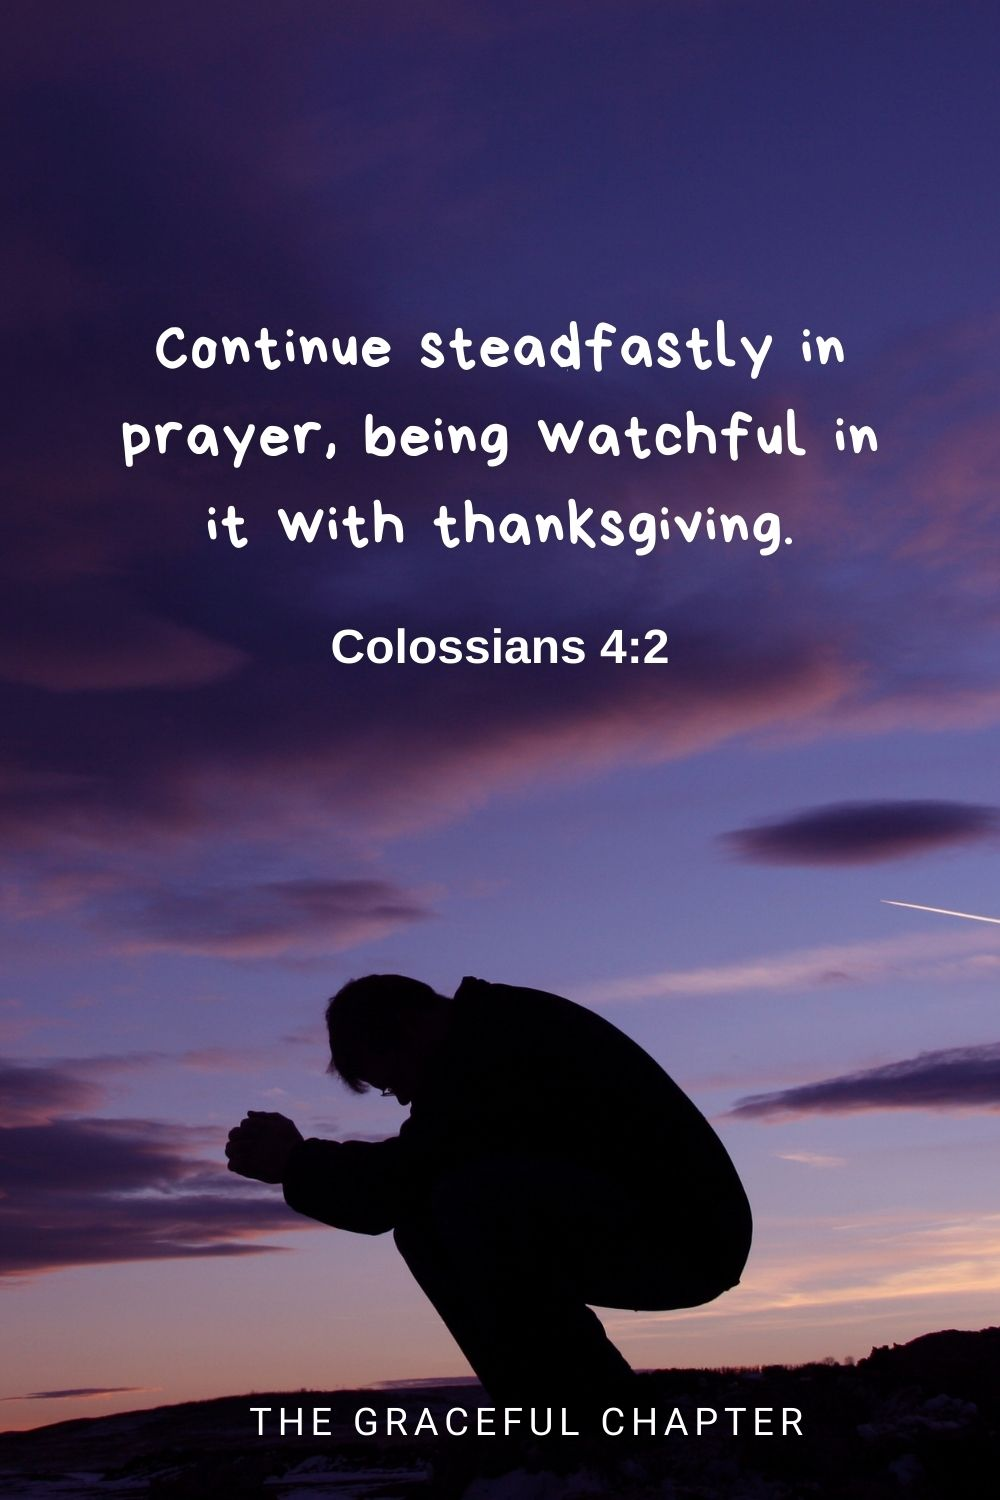 Continue steadfastly in prayer, being watchful in it with thanksgiving. Colossians 4:2